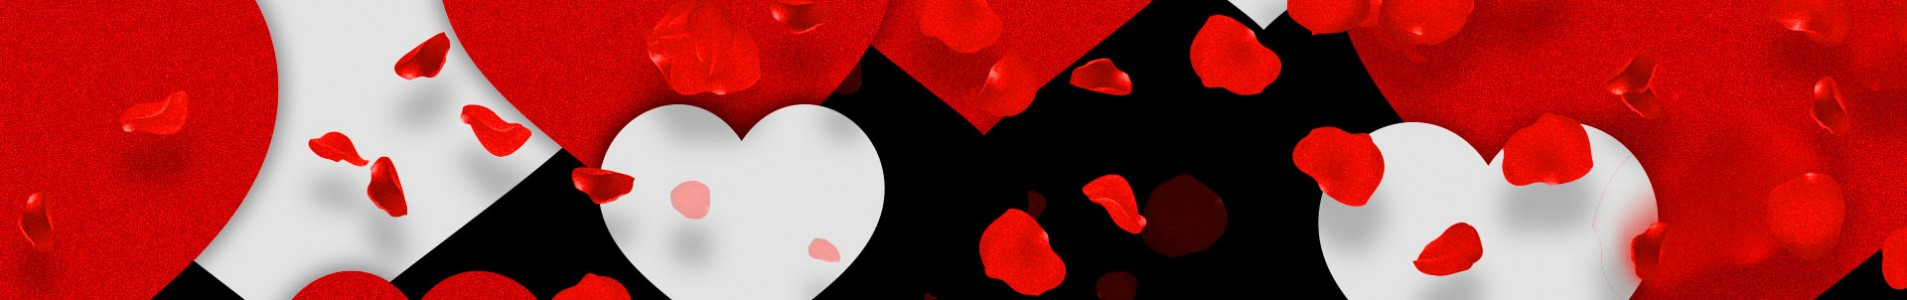 Spinnin' launches Valentine's playlist tool